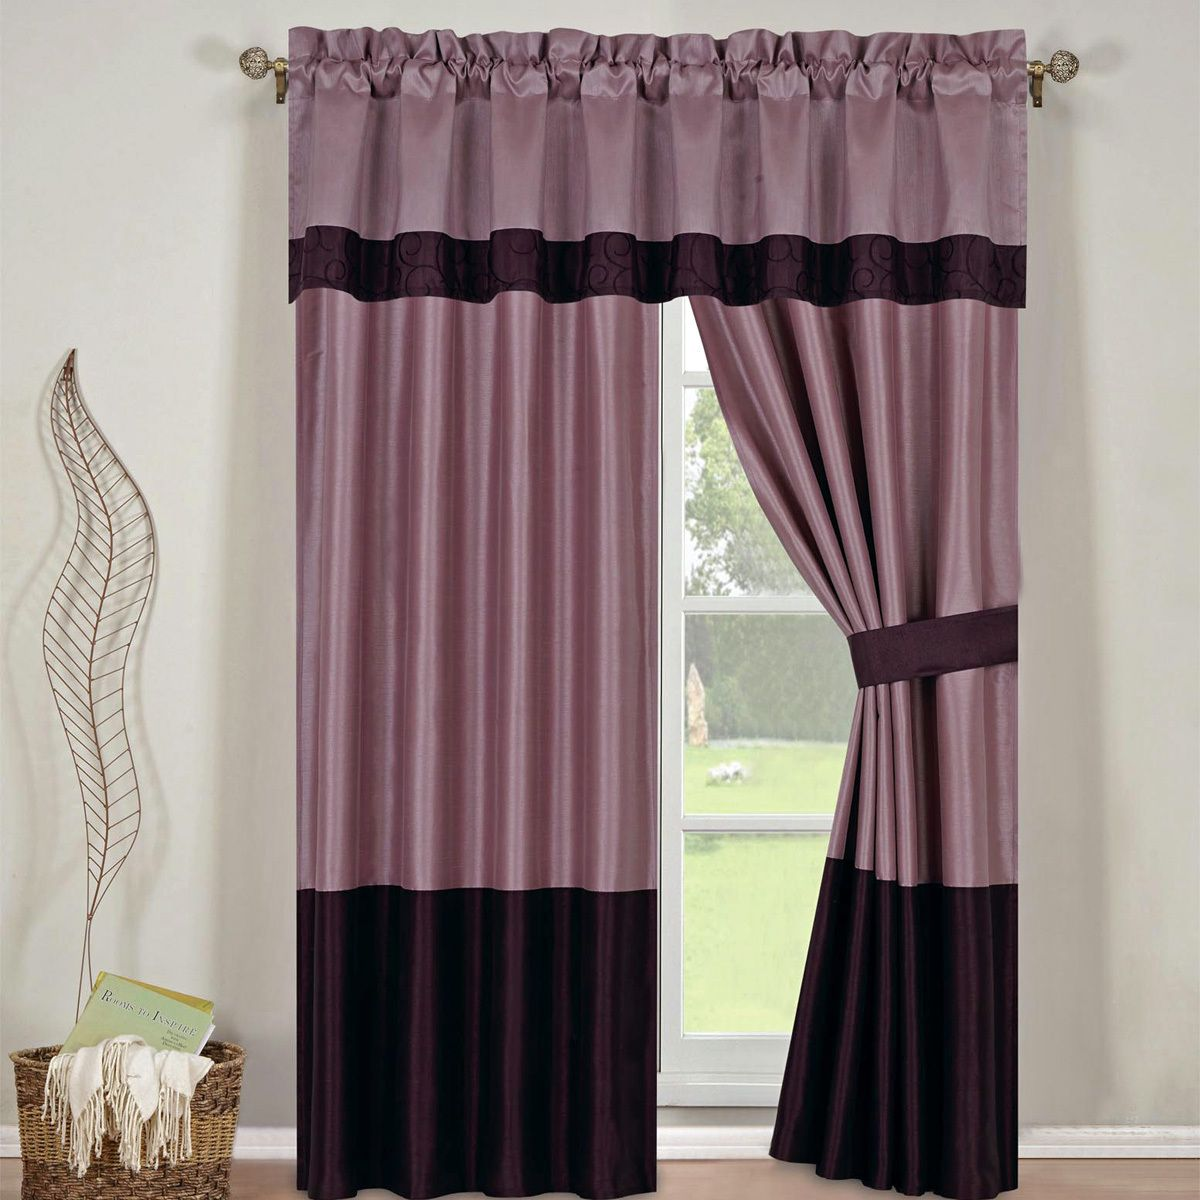 With Home Decor - Wendy Purple Curtains 2 x Panels 42x84